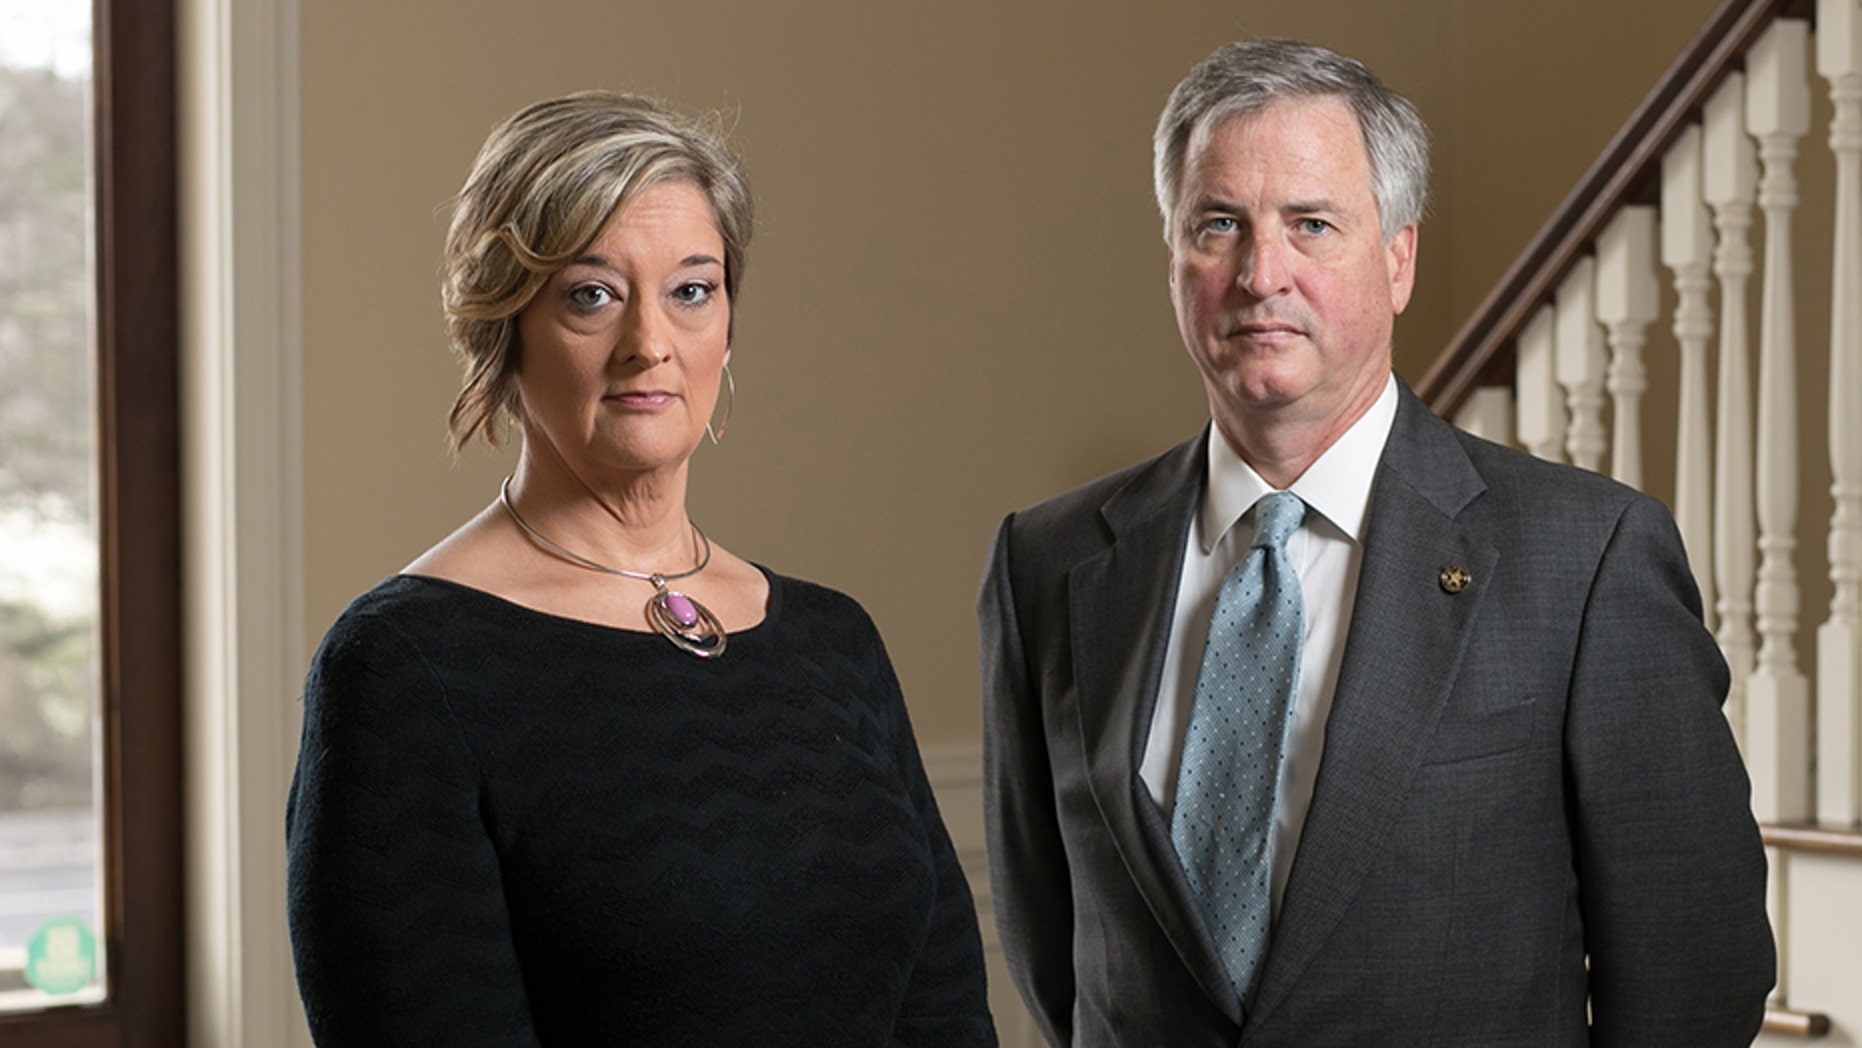 Anne King, of Tennille, Ga., is shown with her lawyer Ken Hodges at Hodges' law office Thursday, March 1, 2018, in Atlanta. King is suing her ex-husband.